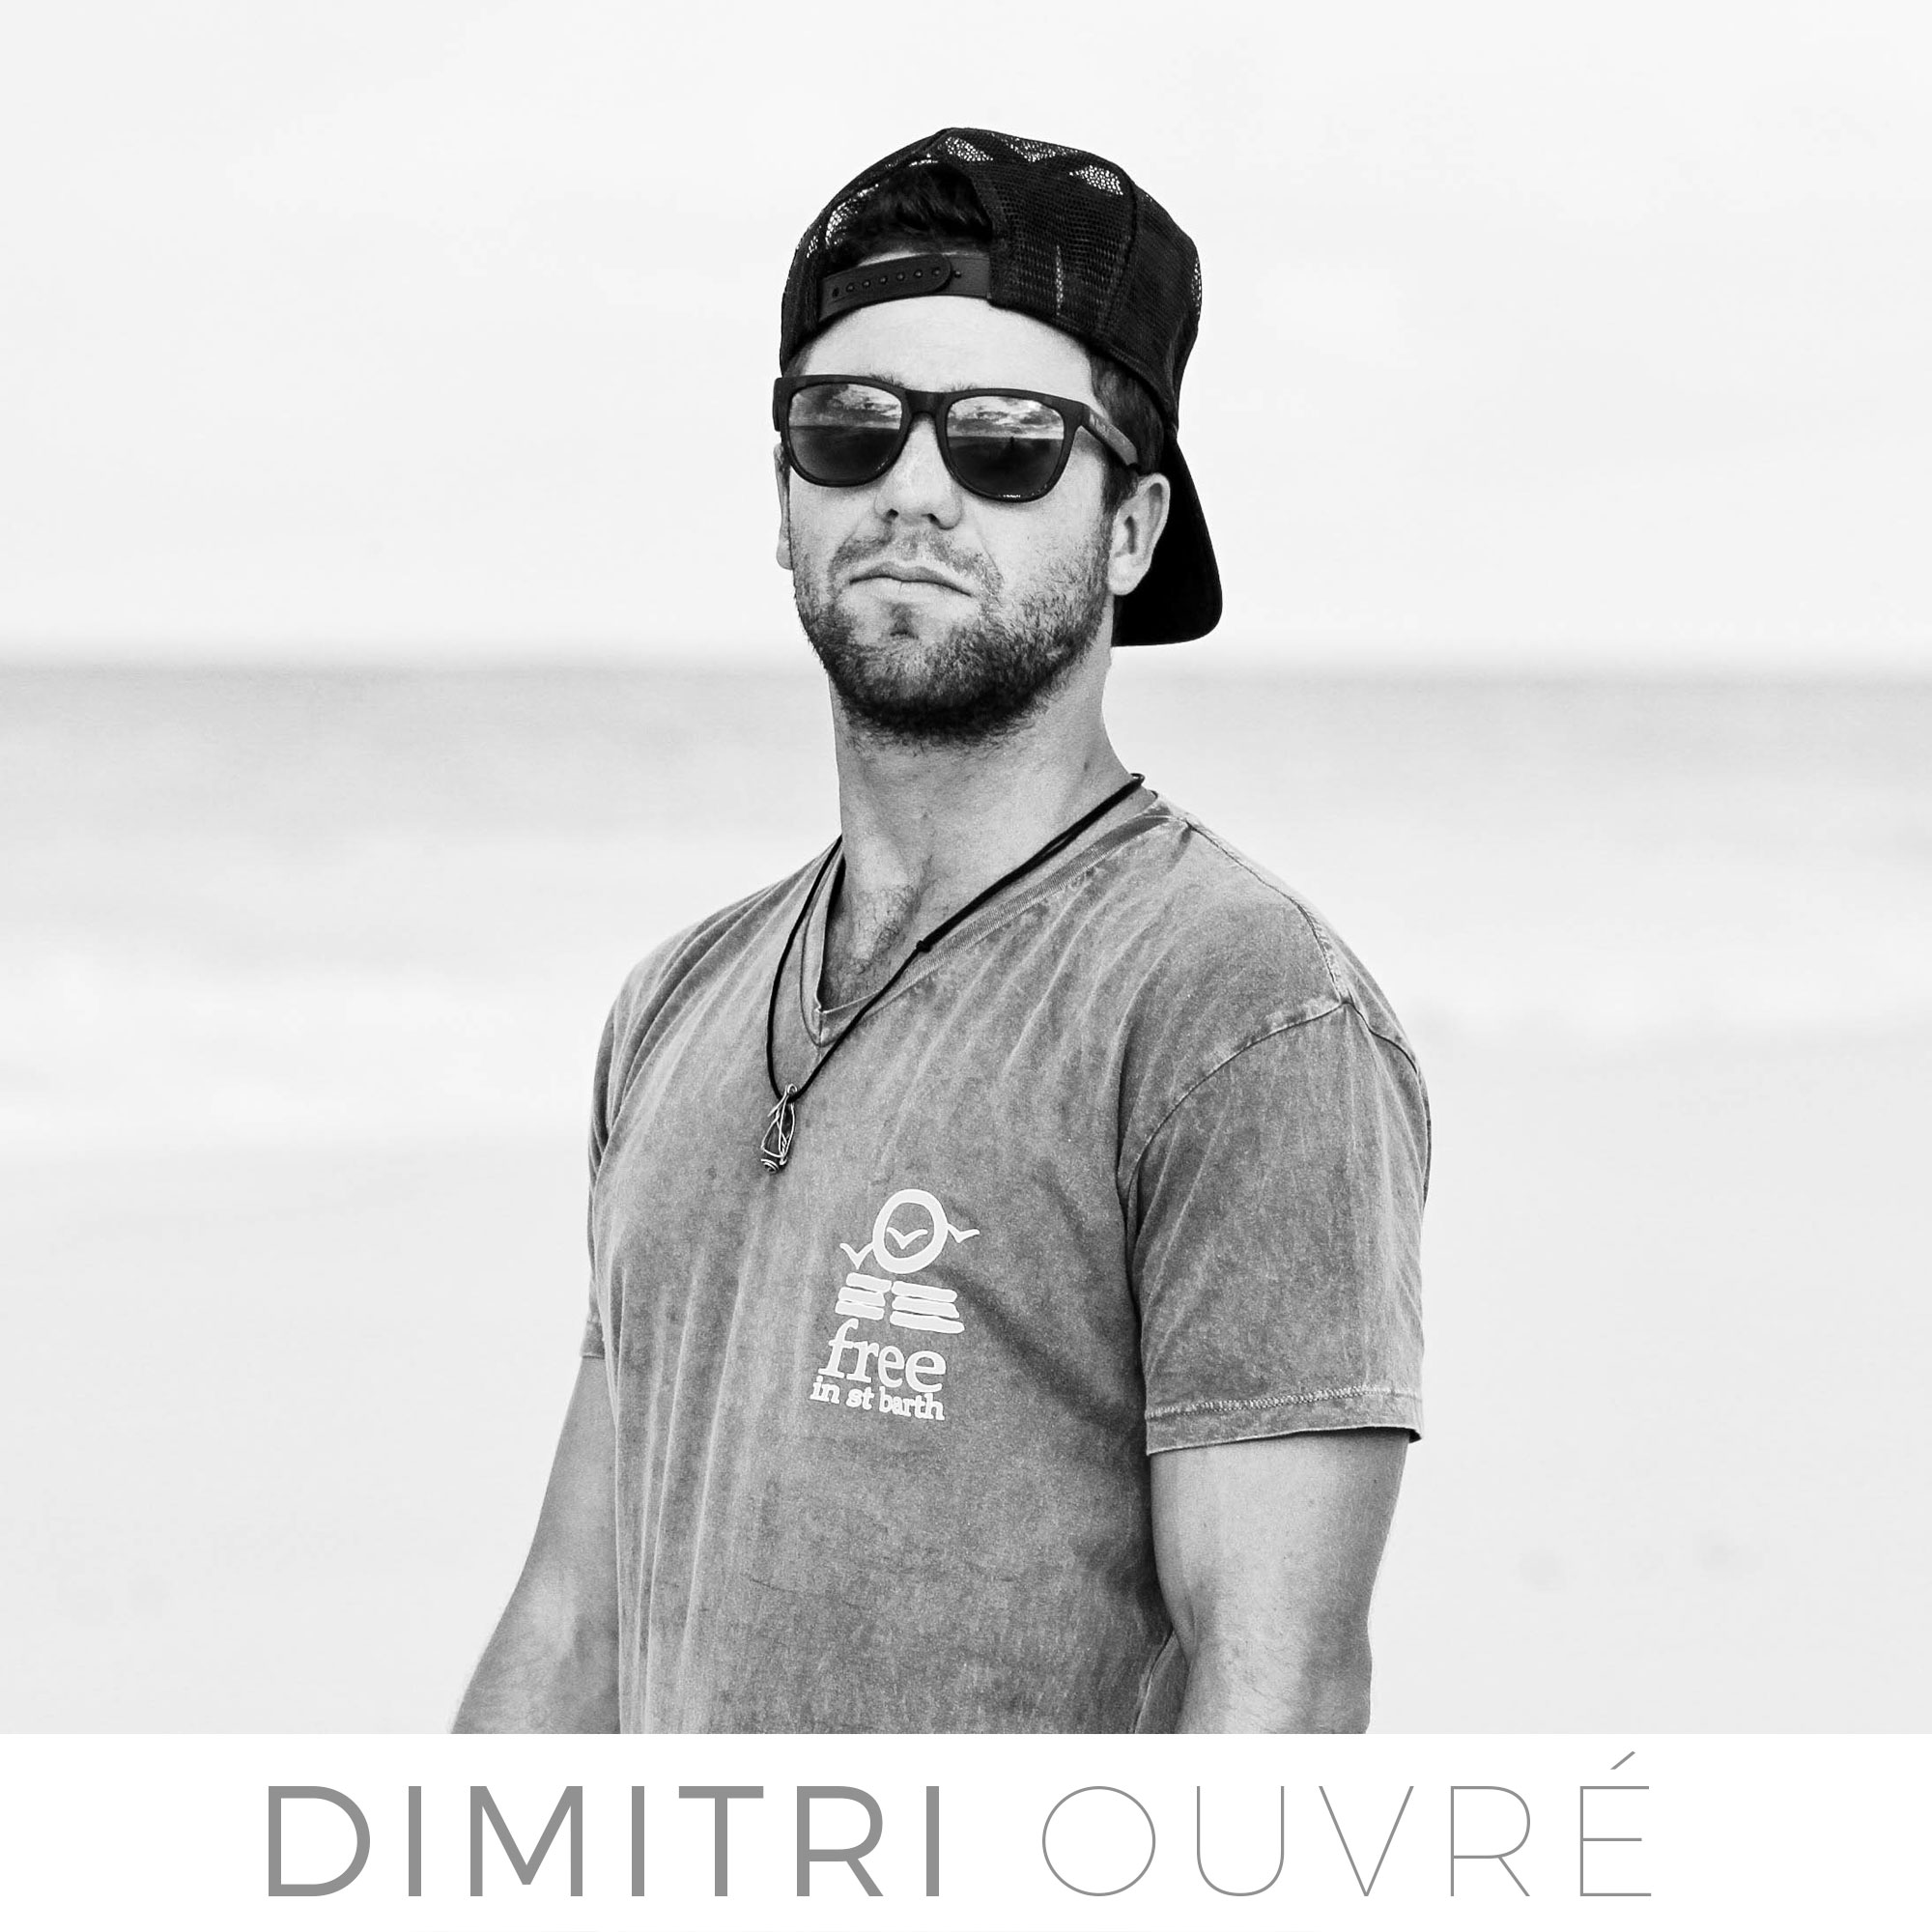 st barth surf team with Dimitri Ouvre